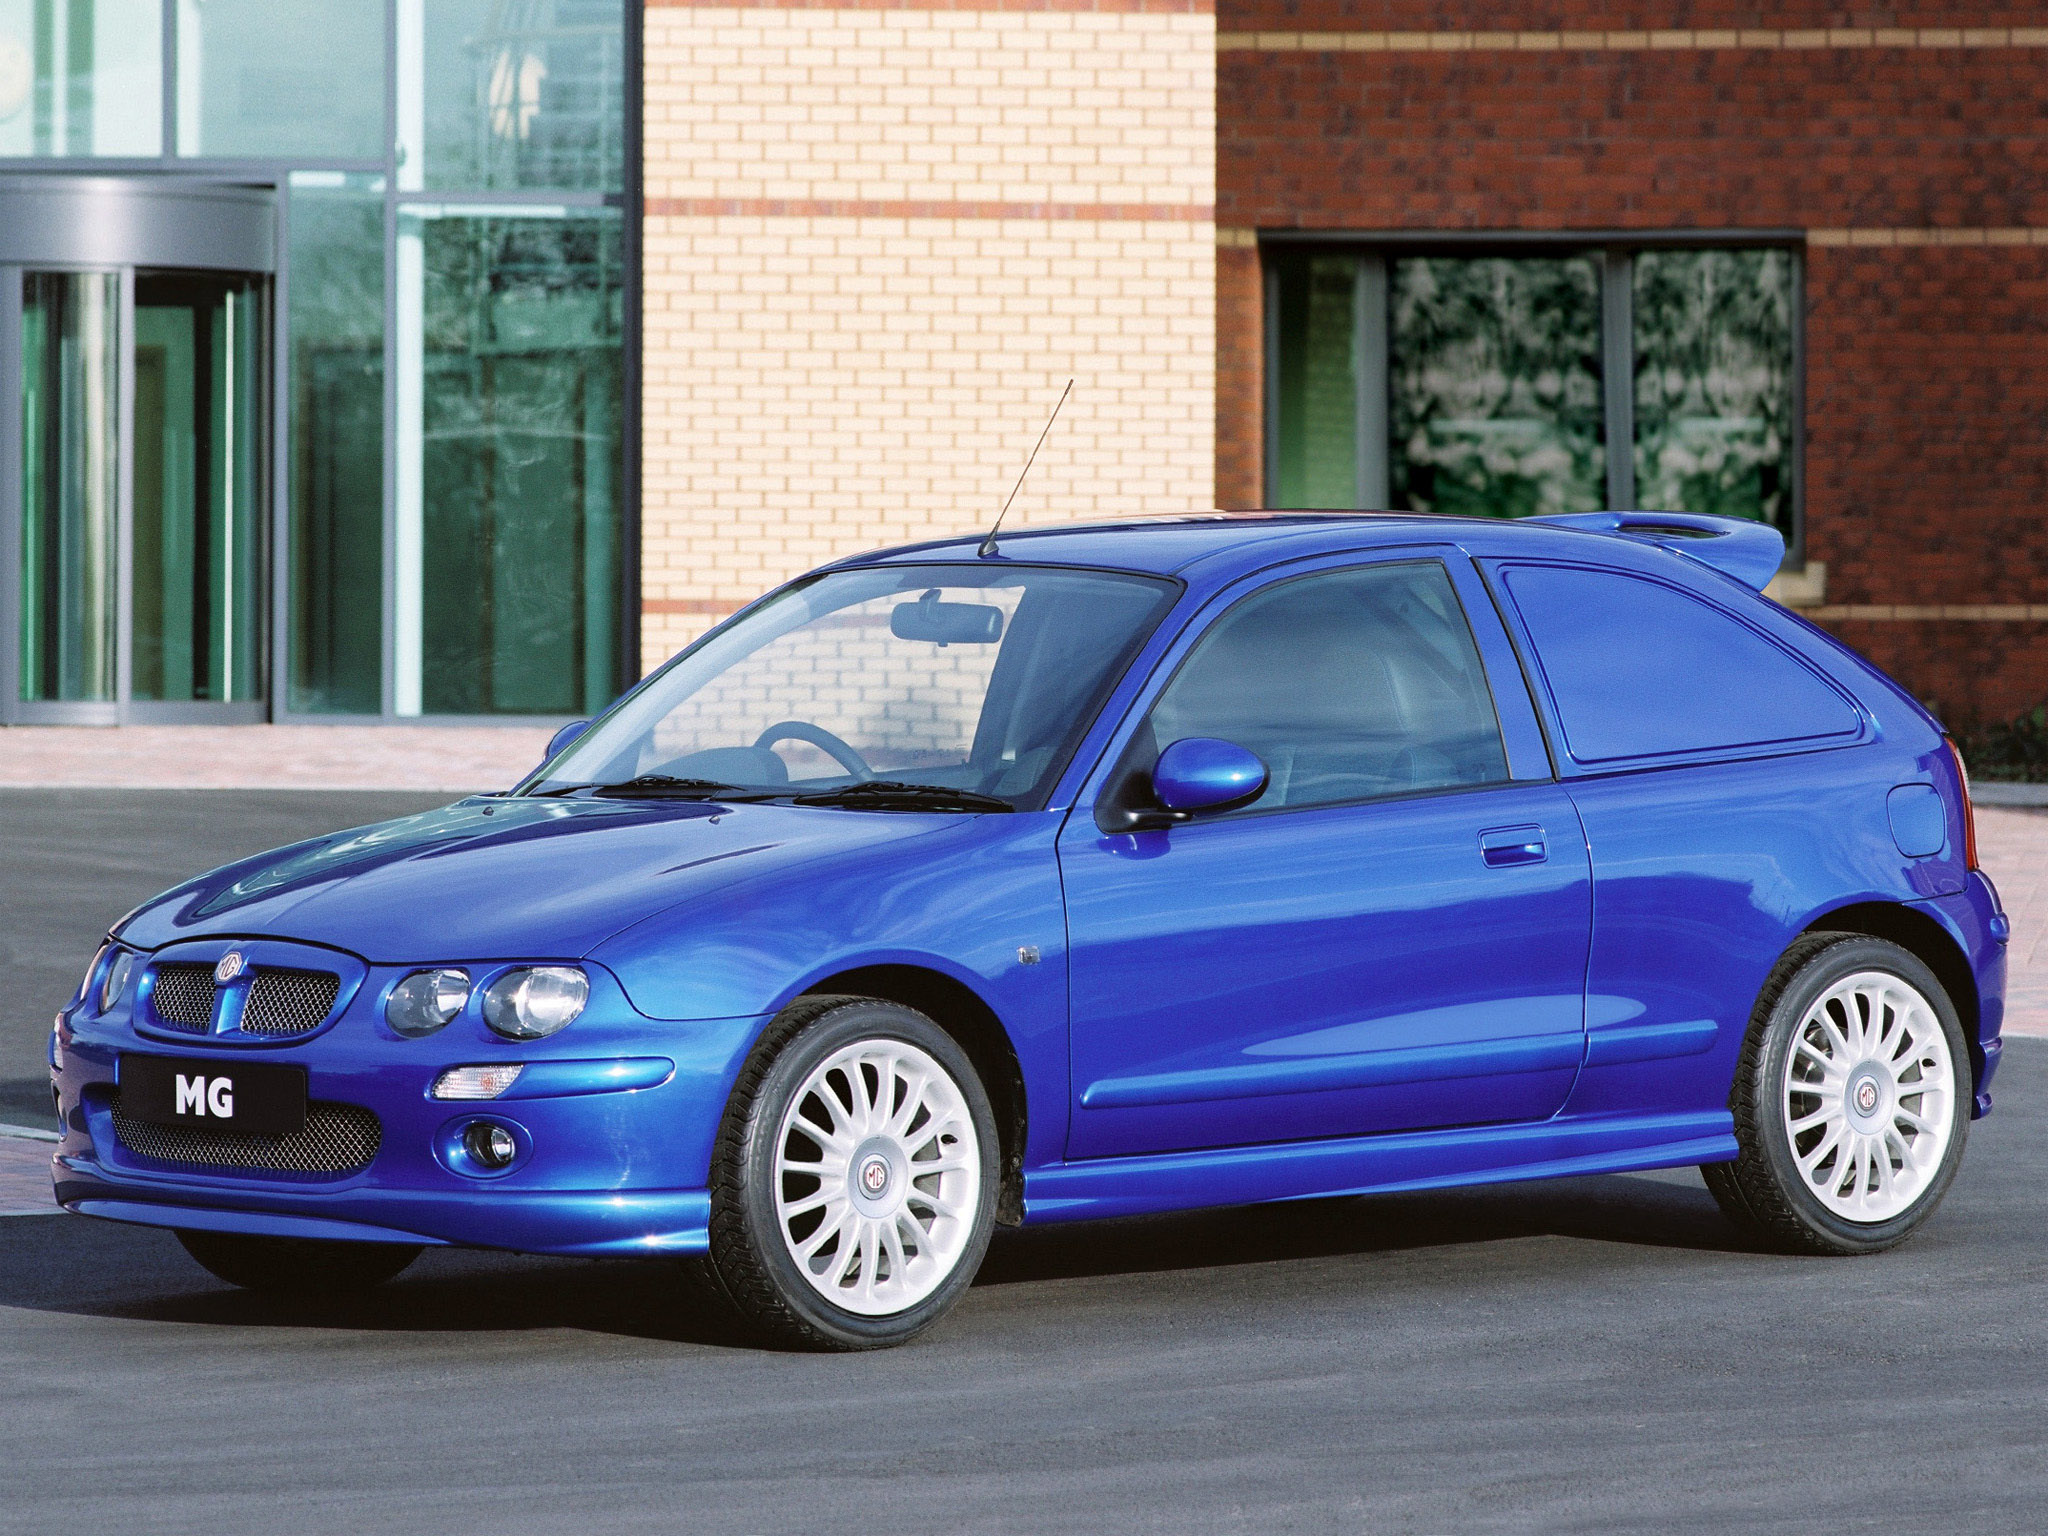 mg zr express 2003 2004 mg zr express 2003 2004 photo 01 car in pictures car photo gallery. Black Bedroom Furniture Sets. Home Design Ideas